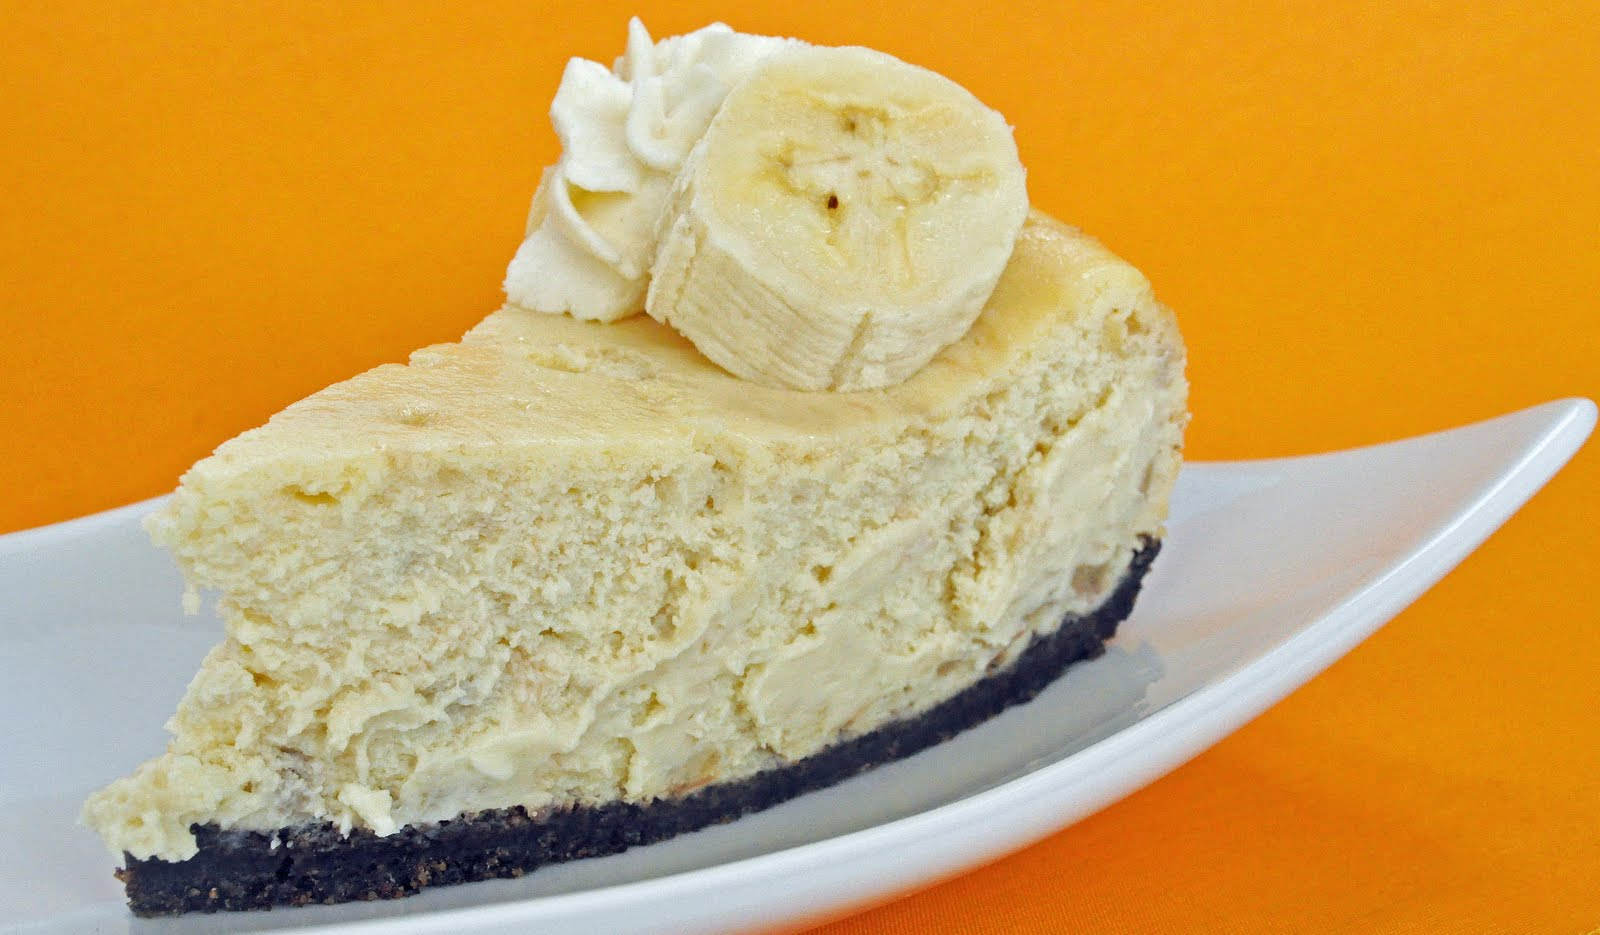 The Cheesecake Factory Banana Cream Cheesecake